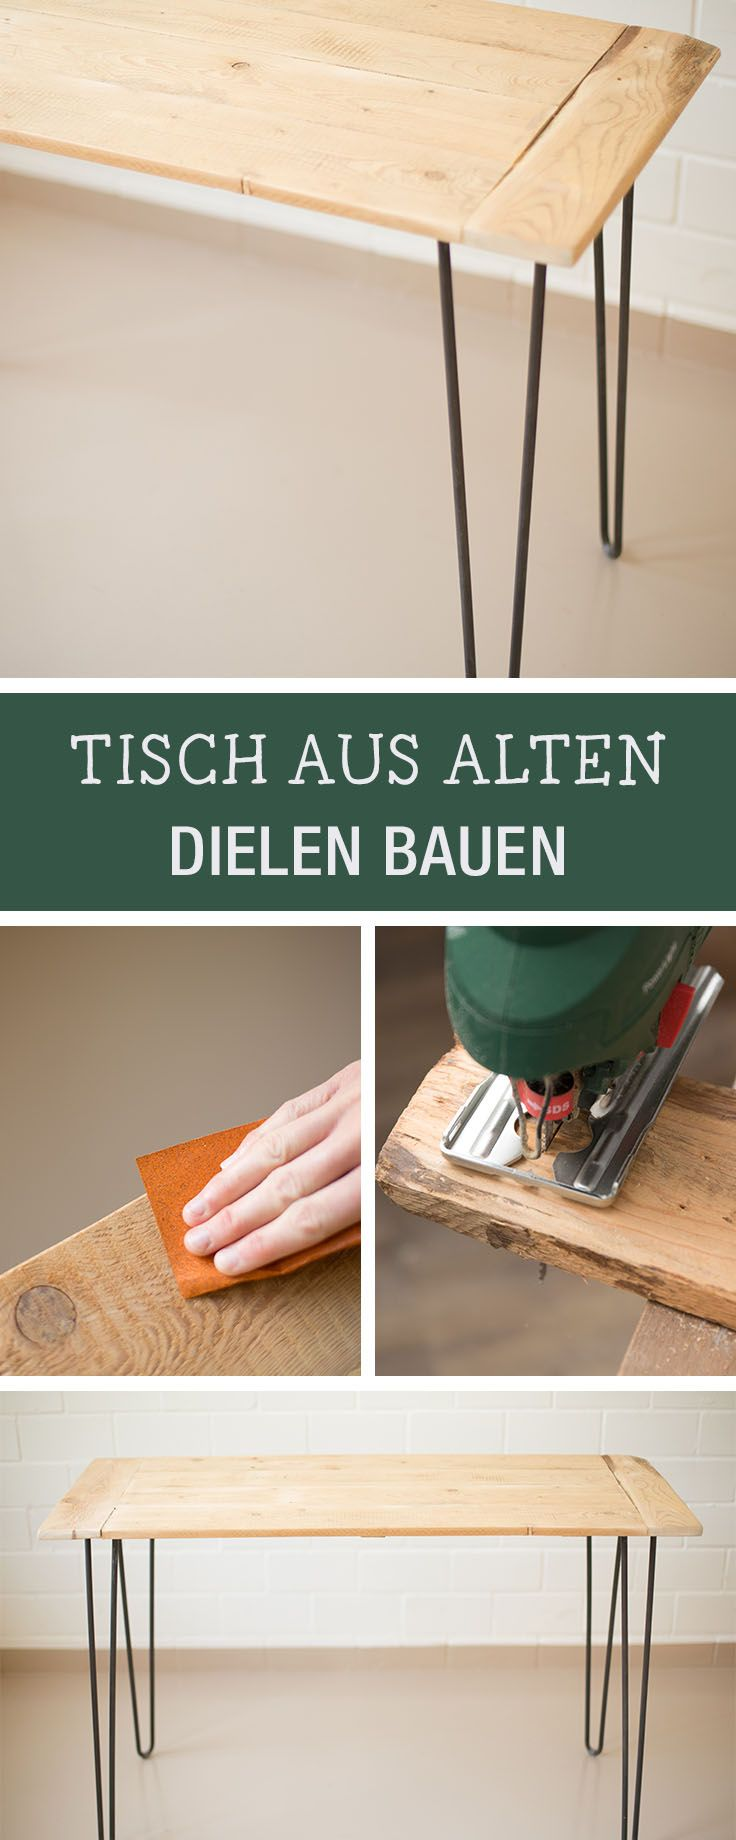 diy m bel tisch mit hairpin legs aus alten dielen bauen diy inspiration for a handmade table. Black Bedroom Furniture Sets. Home Design Ideas